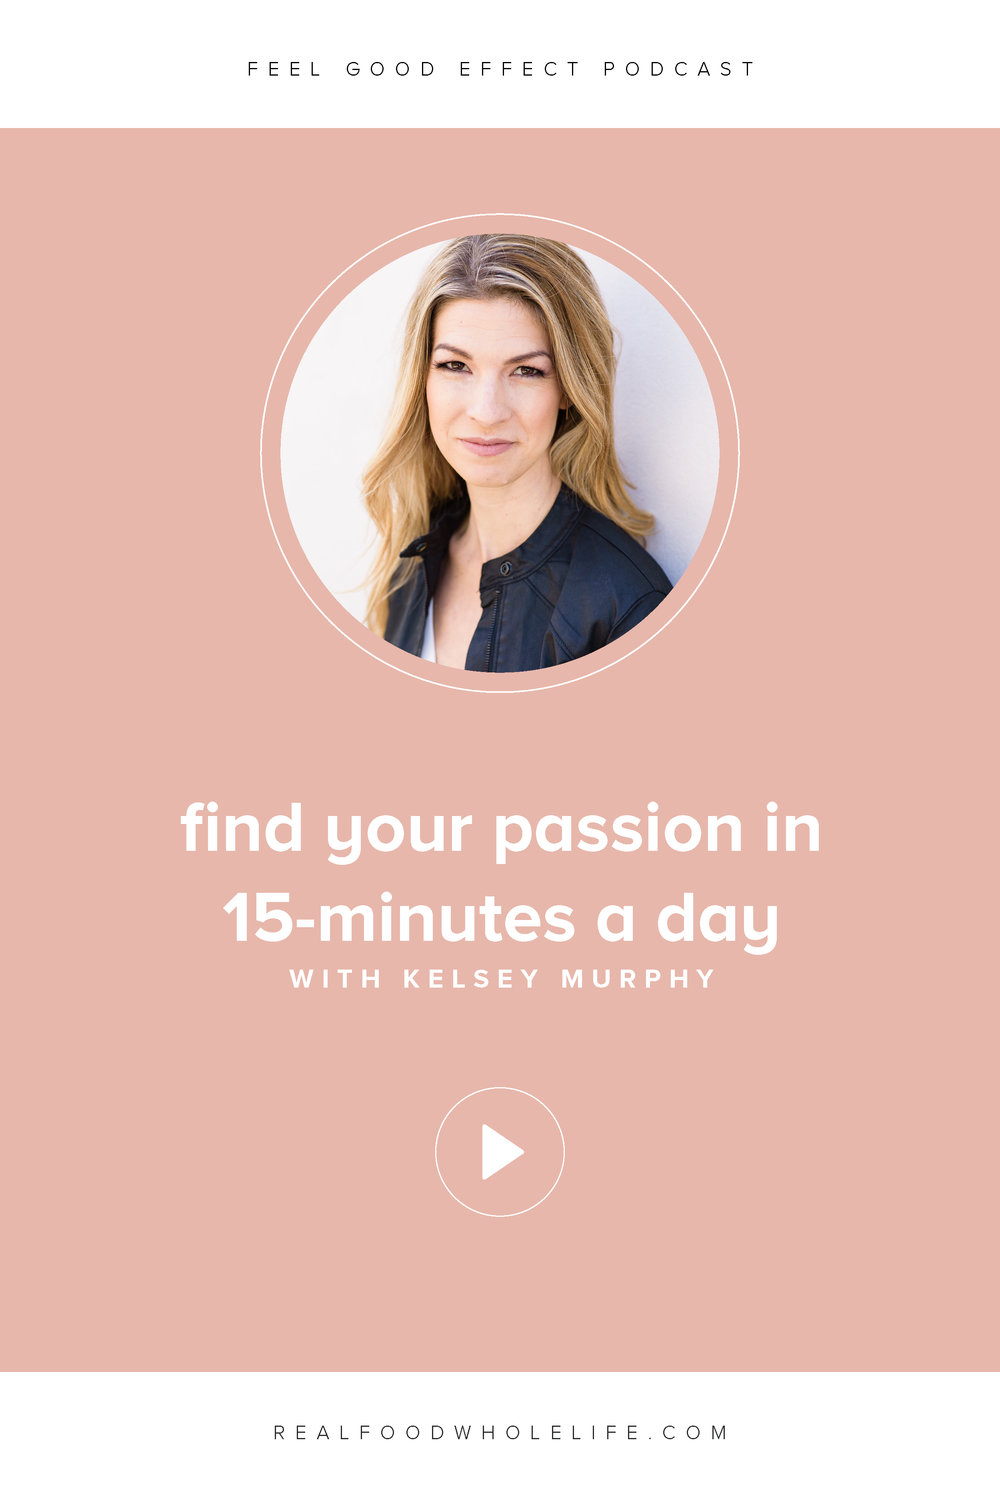 Looking to find your passion in 15-minutes a day? This episode is for you. In today's show we're talking with Kelsey Murphy about the ever-illusive idea of work-life balance, how to find more satisfaction in what you do, and how to discover your passion in just a few minutes each day. #feelgoodeffect #realfoodwholelife #podcast #wellnesspodcast #healthyliving #passion #whiskeyandwork #purpose